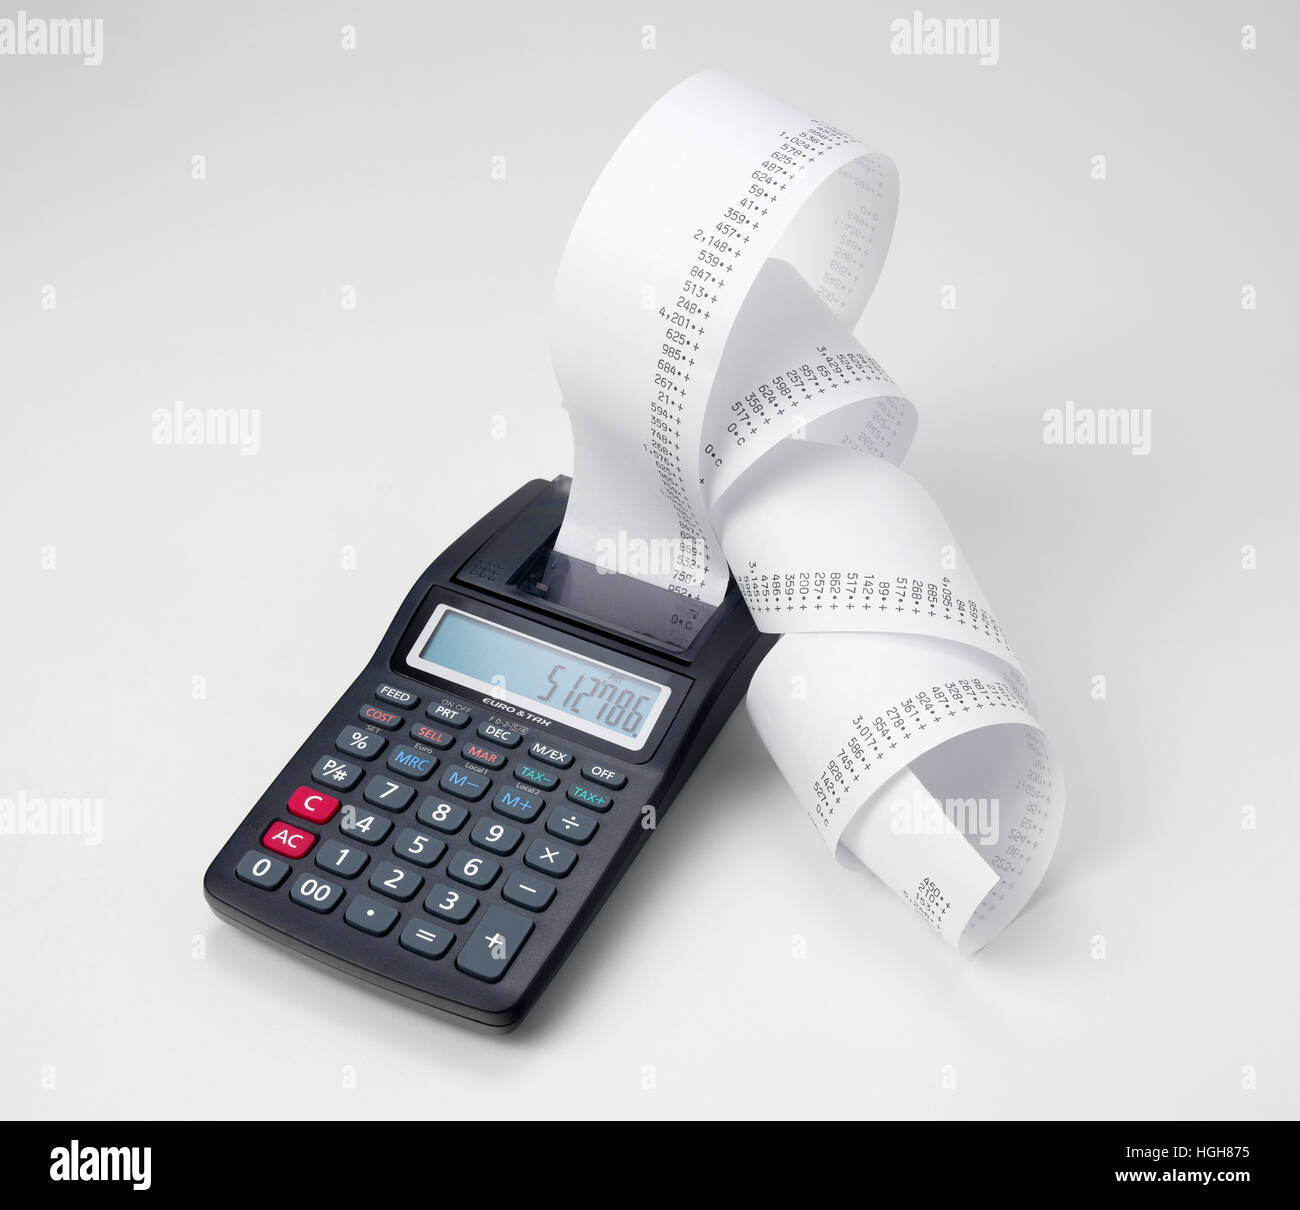 Roll Of Adding Machine Tape Stock Photos & Roll Of Adding